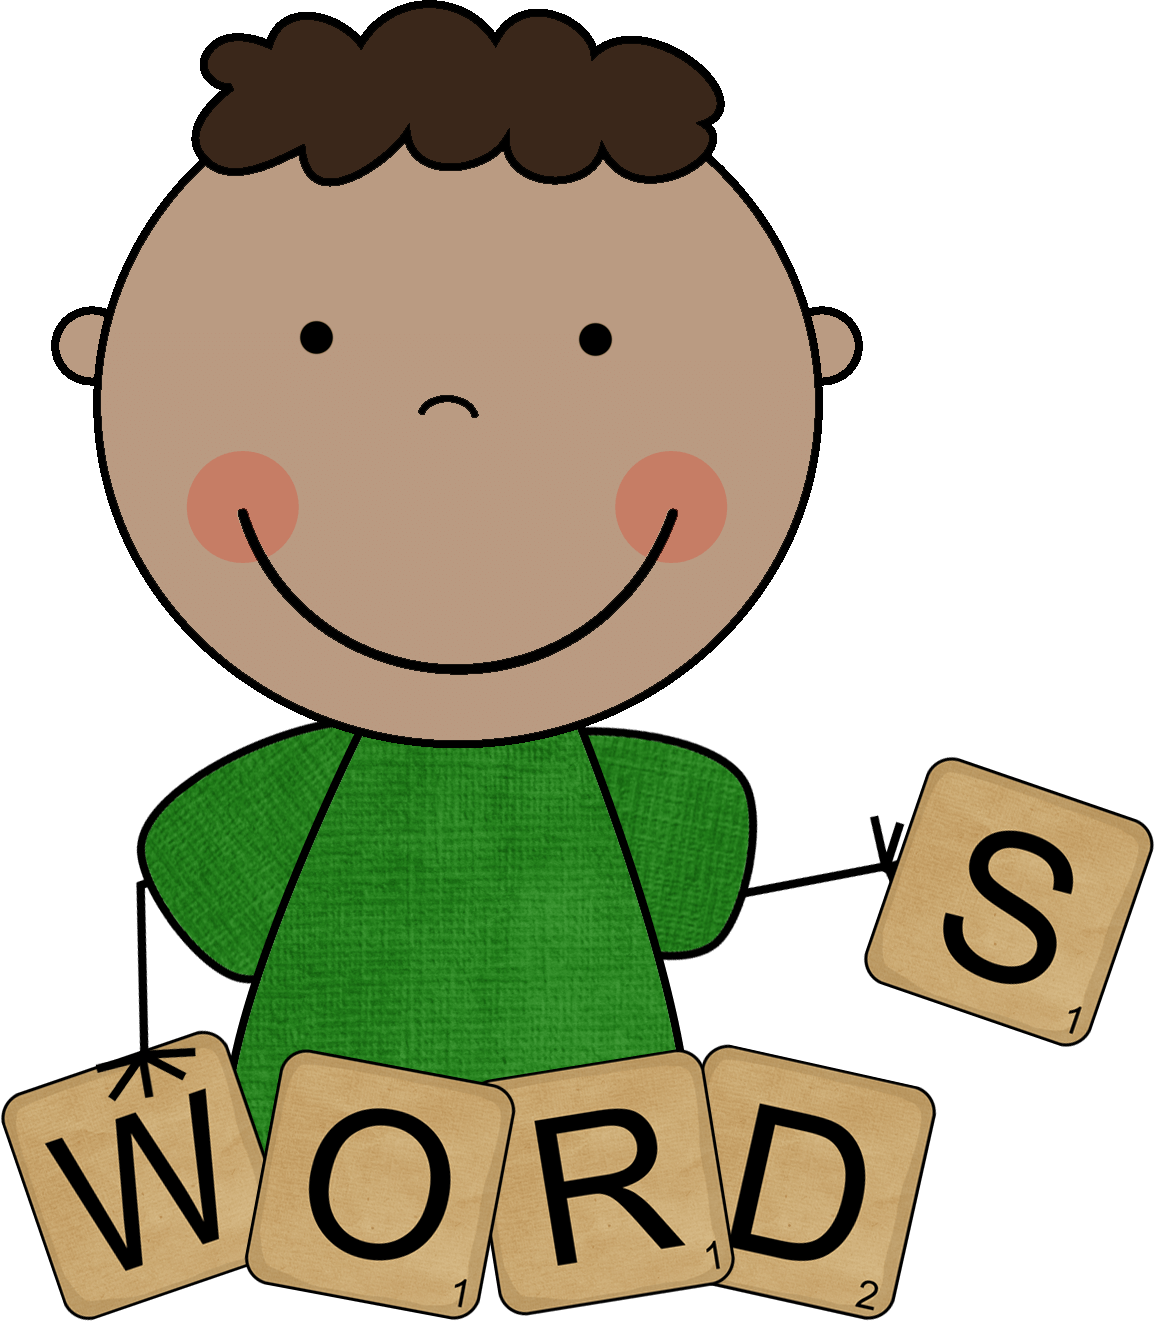 collection of work. Working clipart word